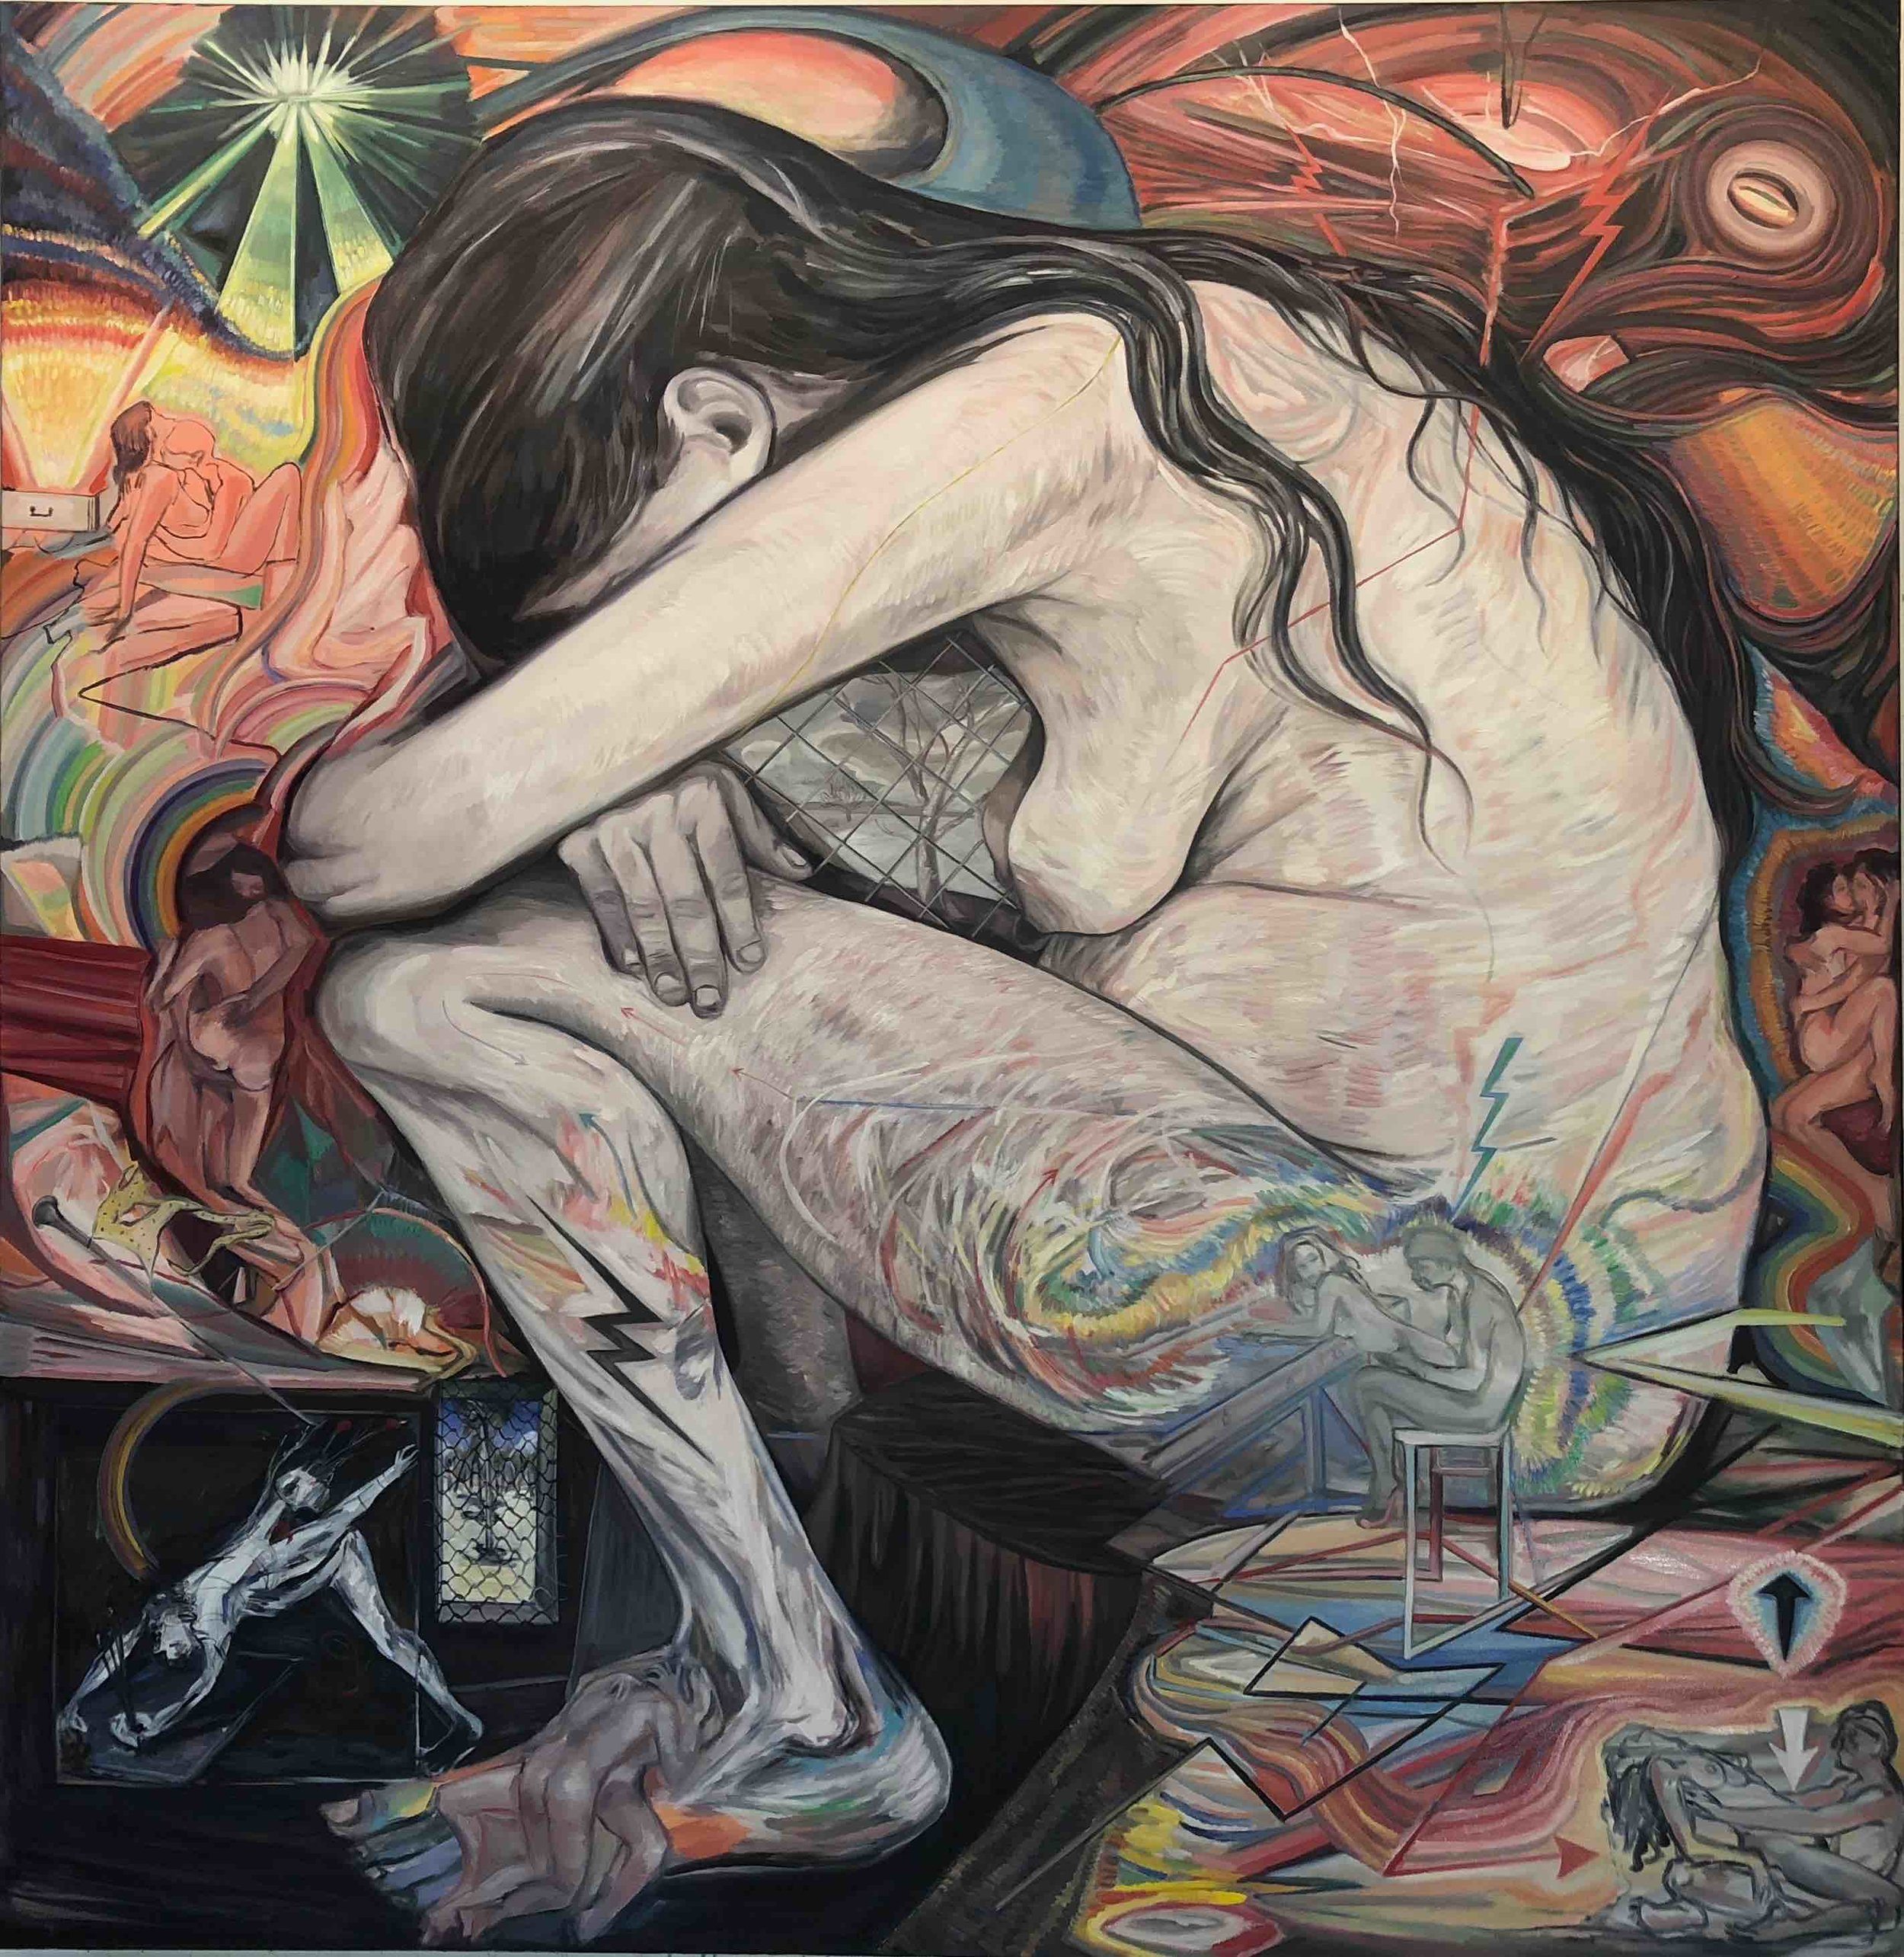 '#Sorrow', oil on canvas, 220cm x 214cm